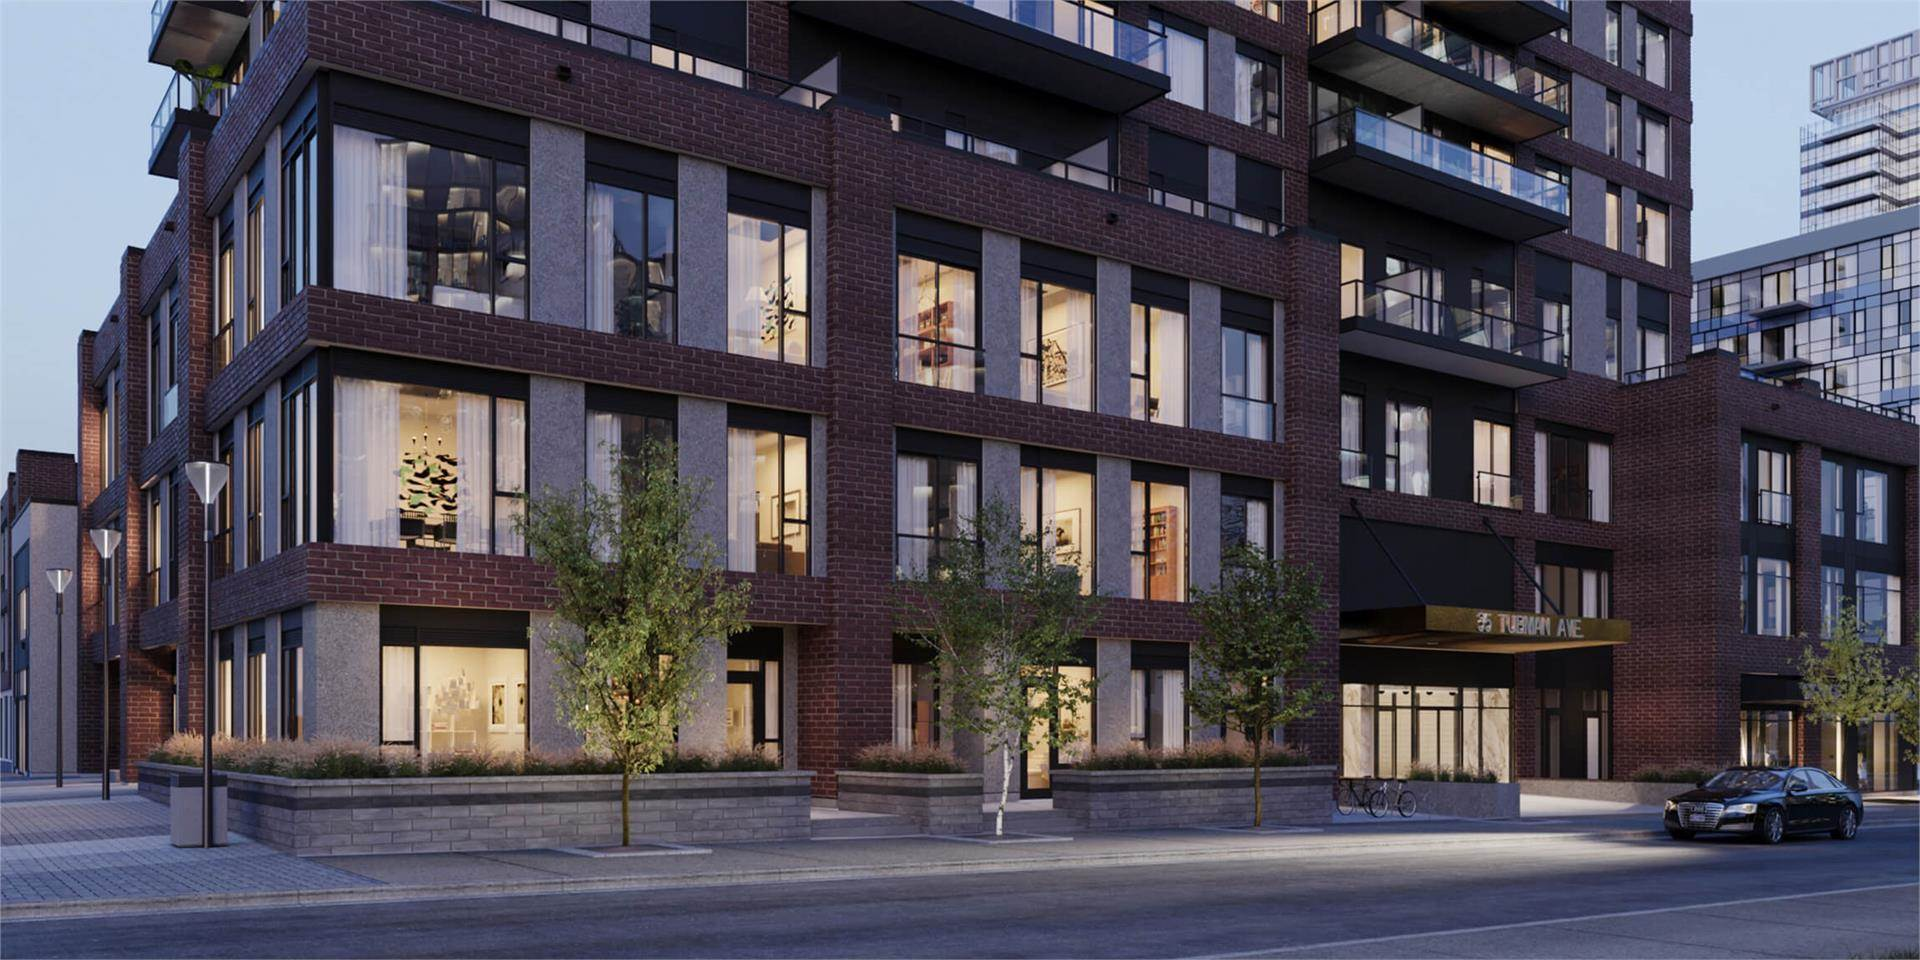 2020_02_05_04_02_43_artsyboutiquecondominiums_rendering